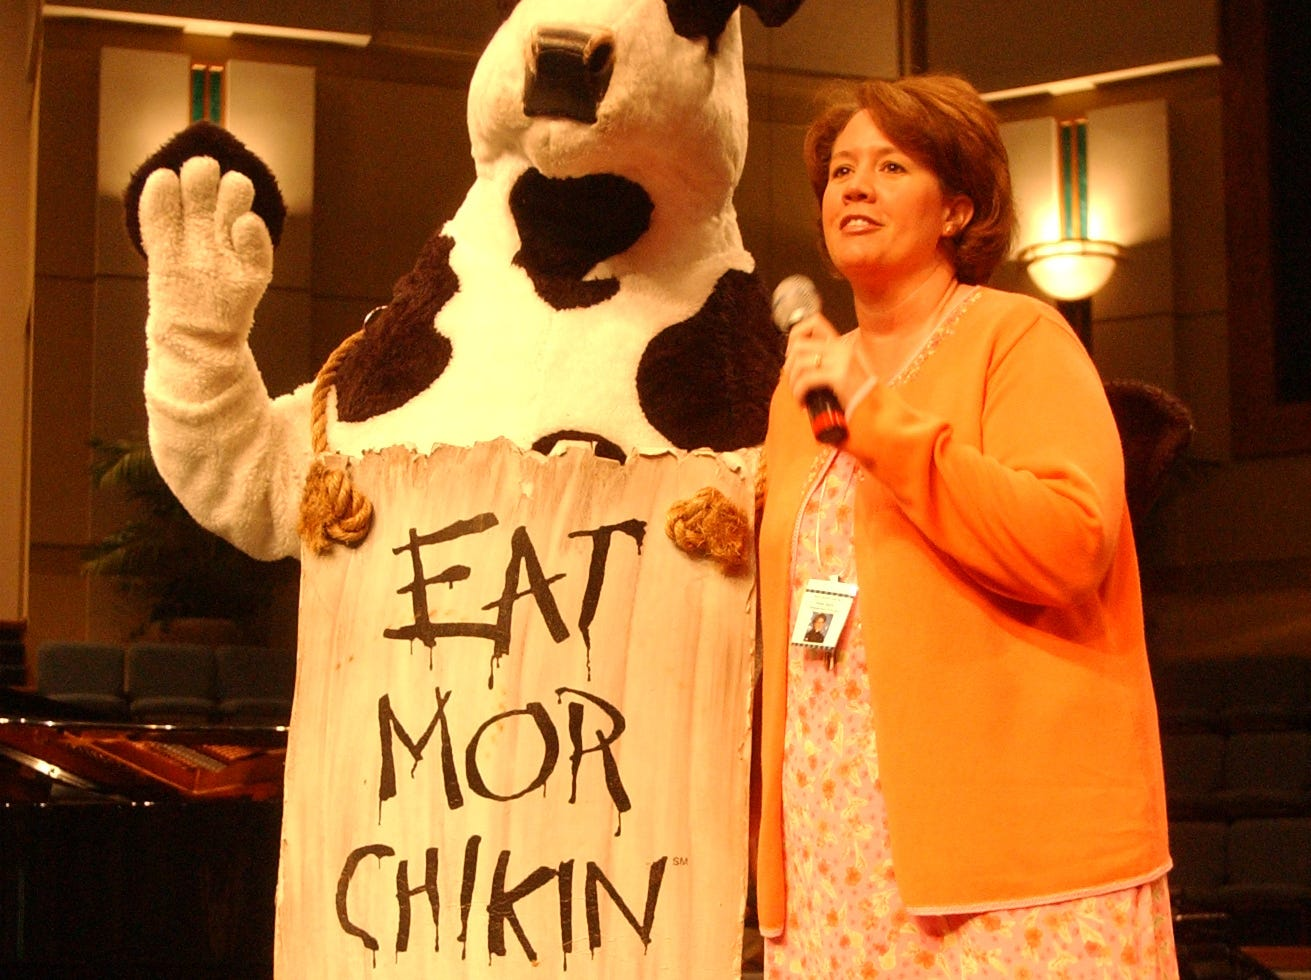 The Chick-fli-A cow is introduced by Grace Baptist Church School elementry school principal Susan Barnes duriing a Chapel Service in the Church Sanctuary Friday morning.  2003.